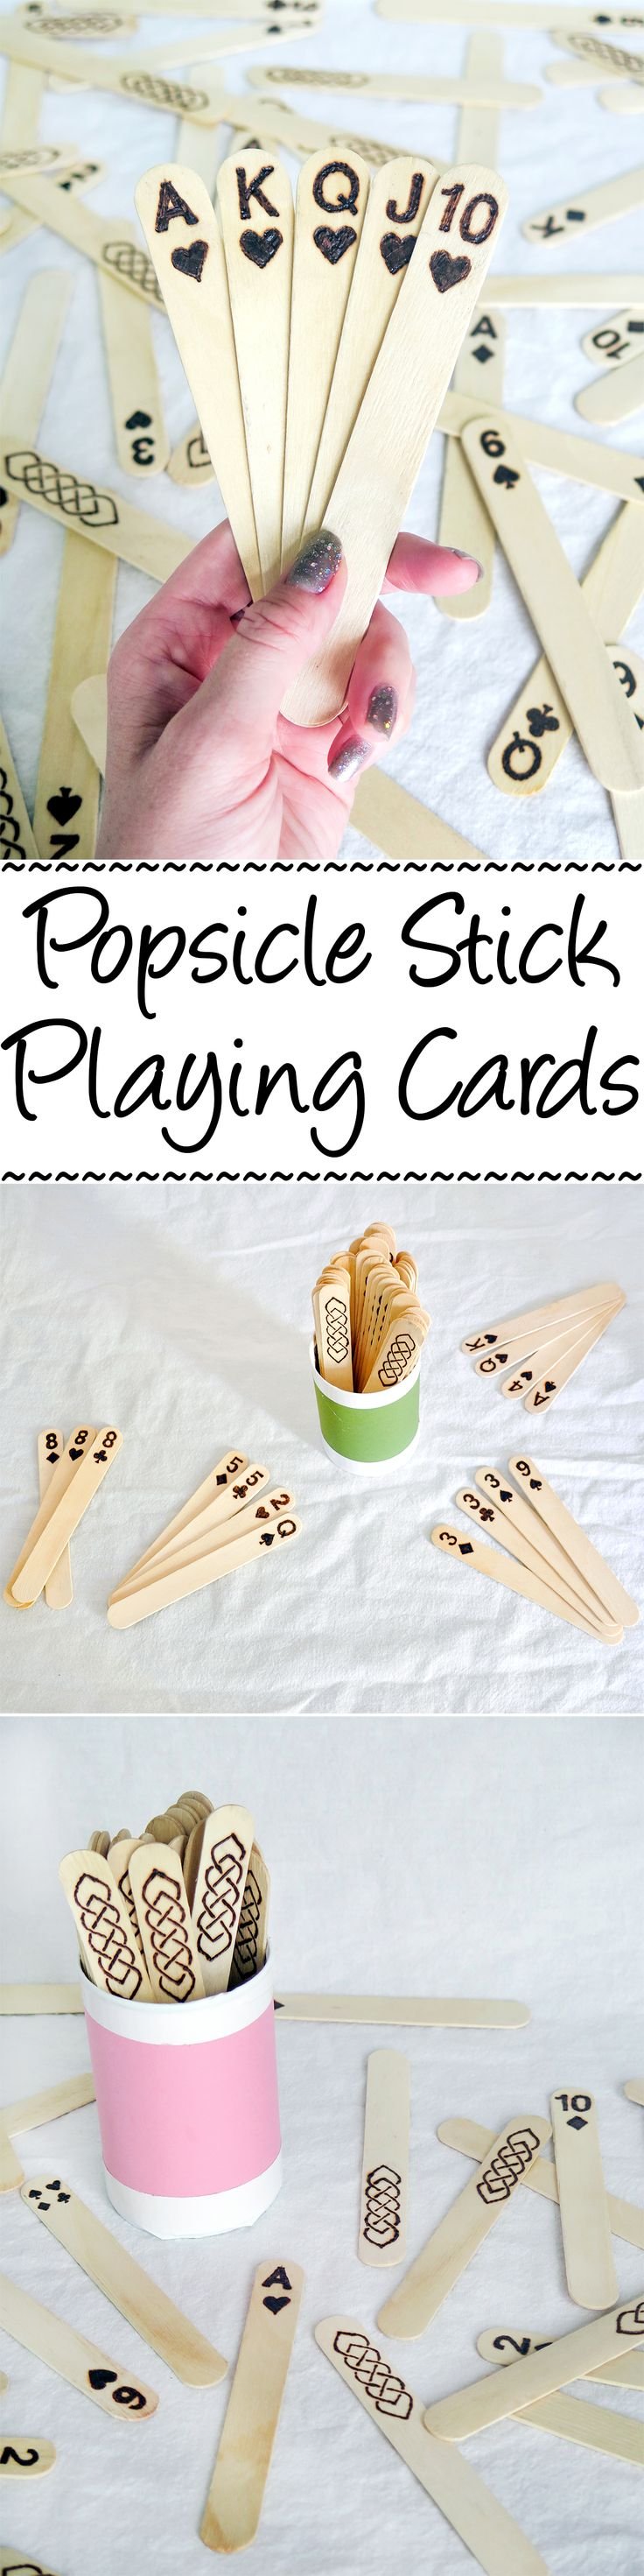 Best 25 Diy games ideas on Pinterest